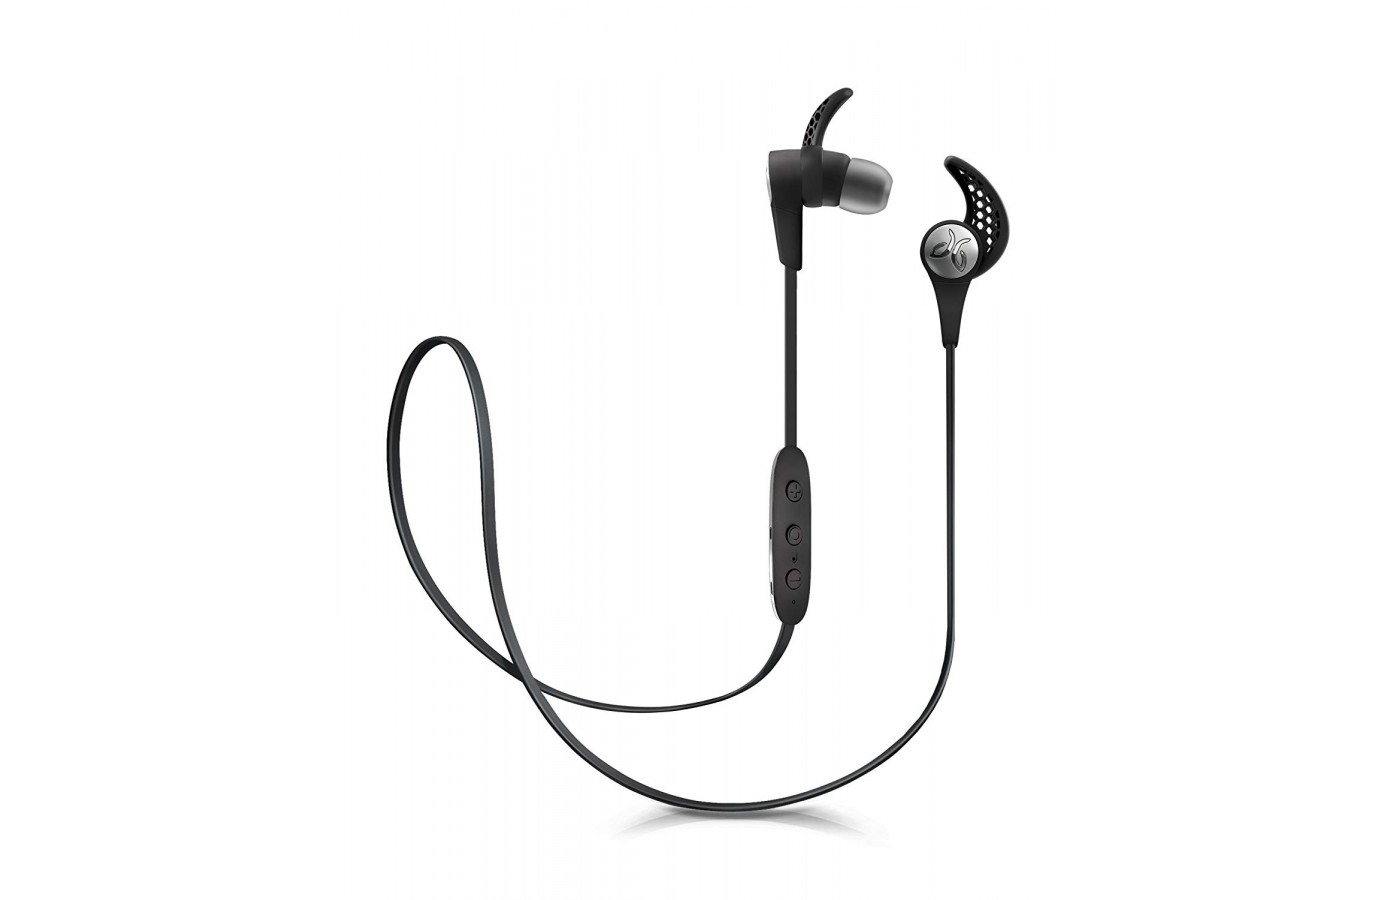 The Jaybird X3 is a compact iteration of its popular, water resistant, wireless sports headphones.